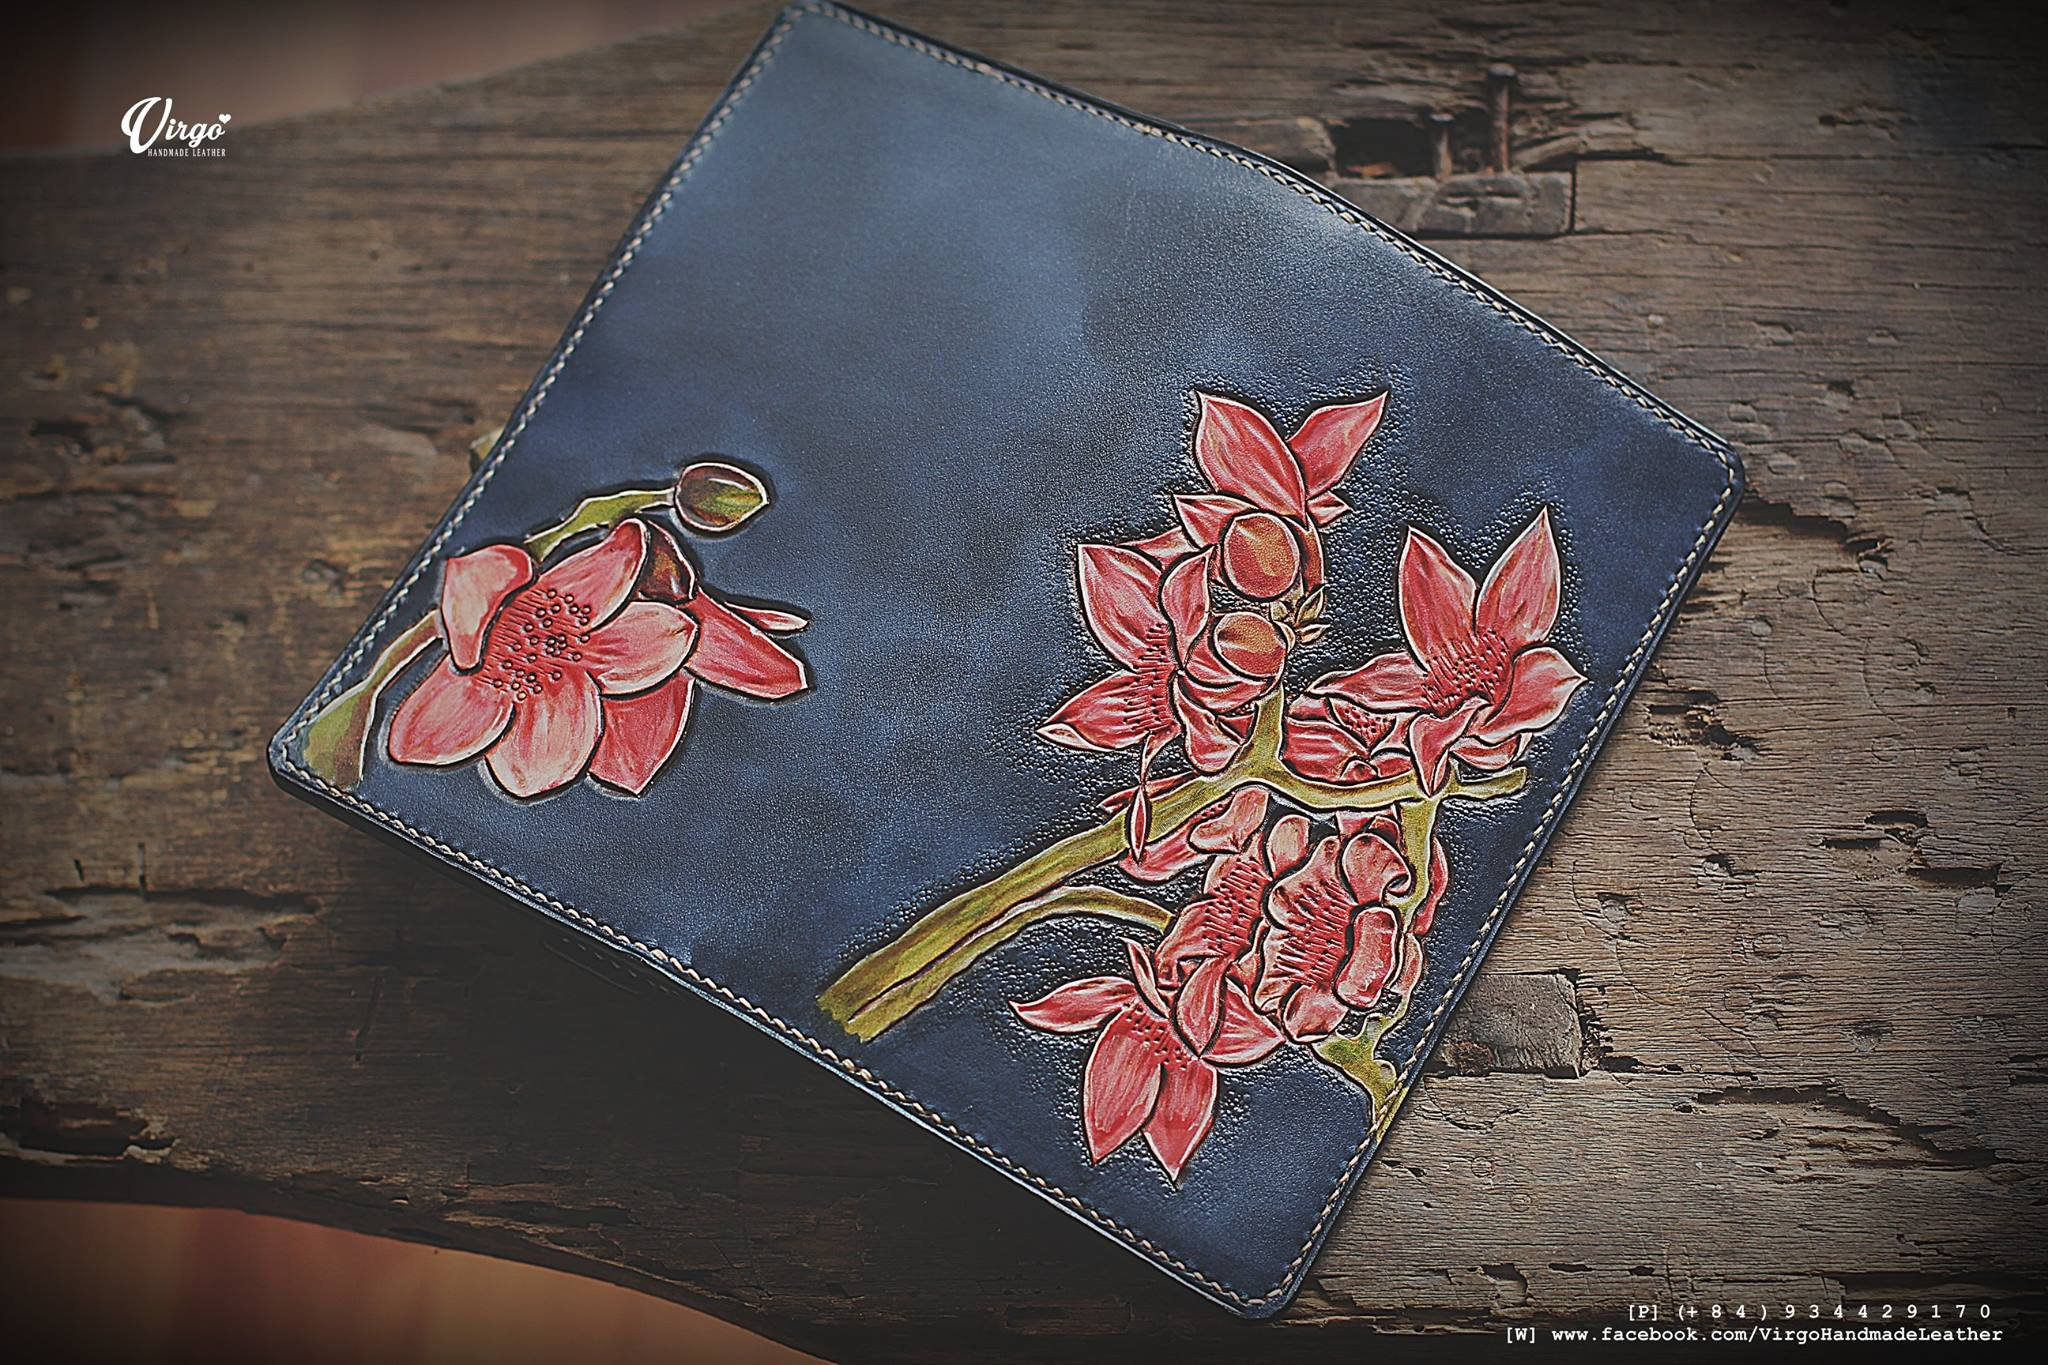 Gladiola long hand tooled wallet for women | Personalized Vintage vegetable tanned leather handmade wallet